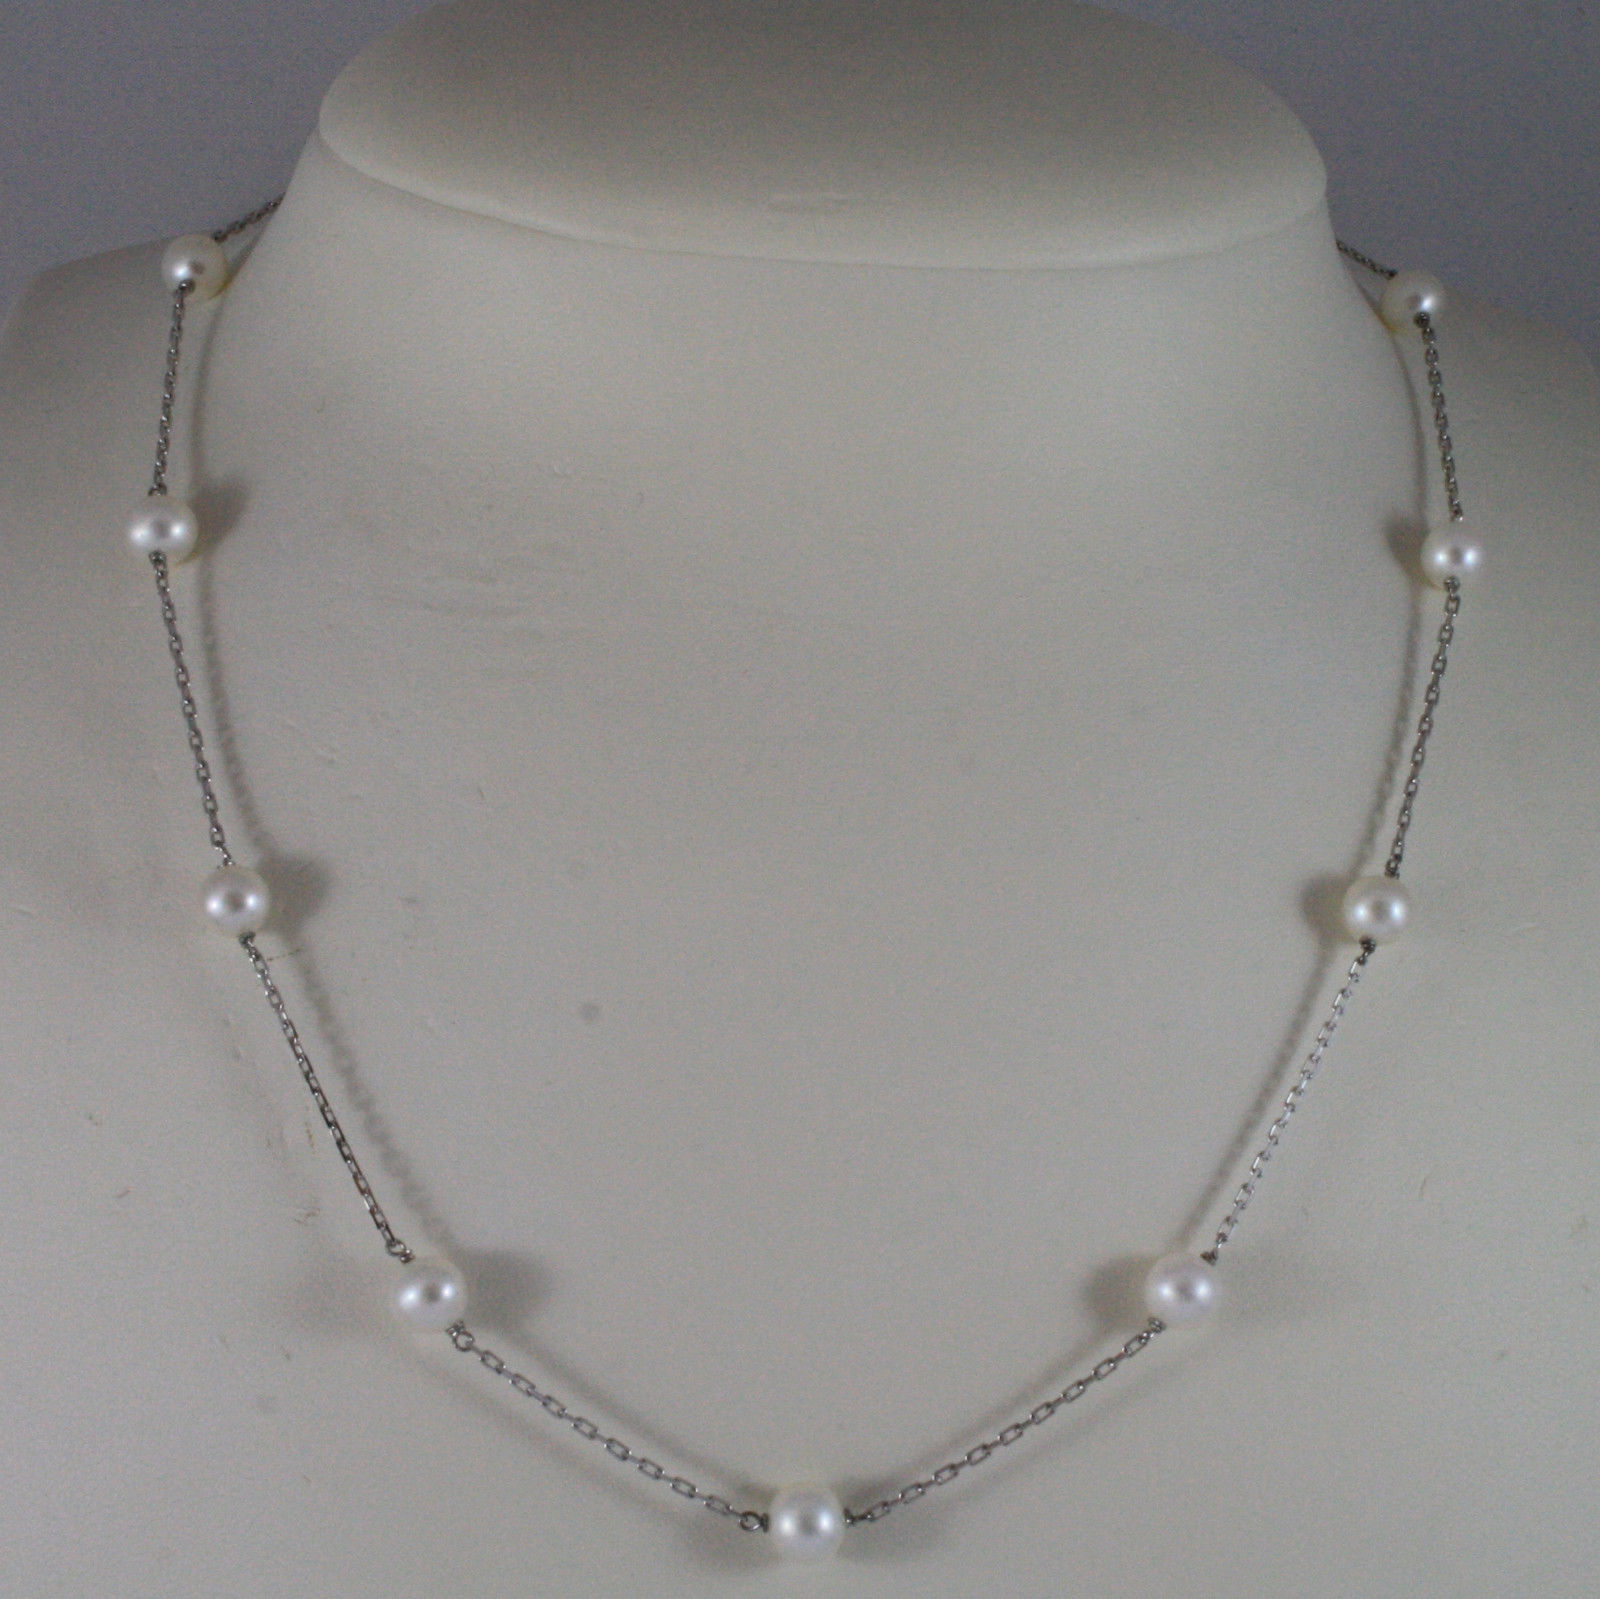 SOLID 18K WHITE GOLD NECKLACE WITH FRESHWATER WHITE PEARL MADE IN ITALY 17,91 IN